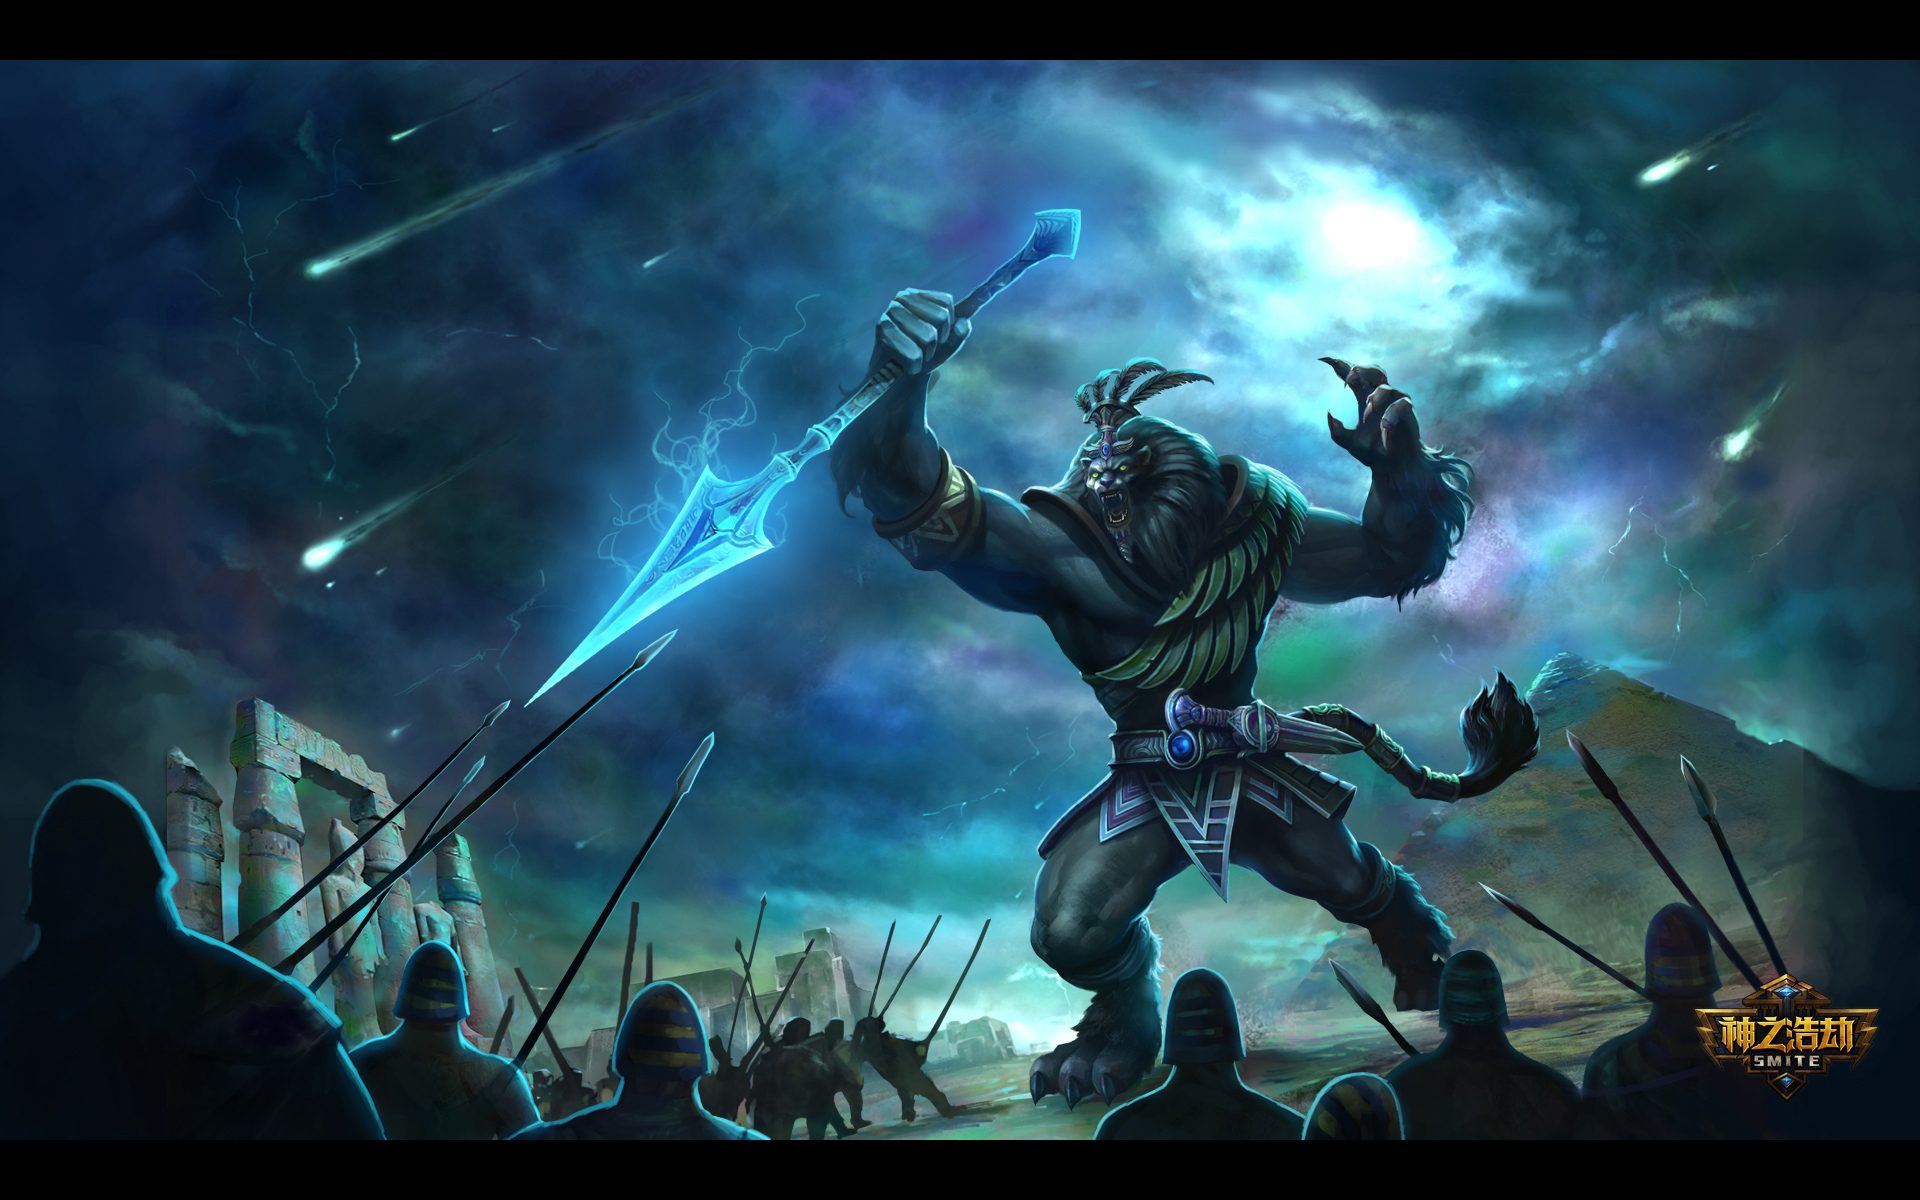 smite wallpapers A1